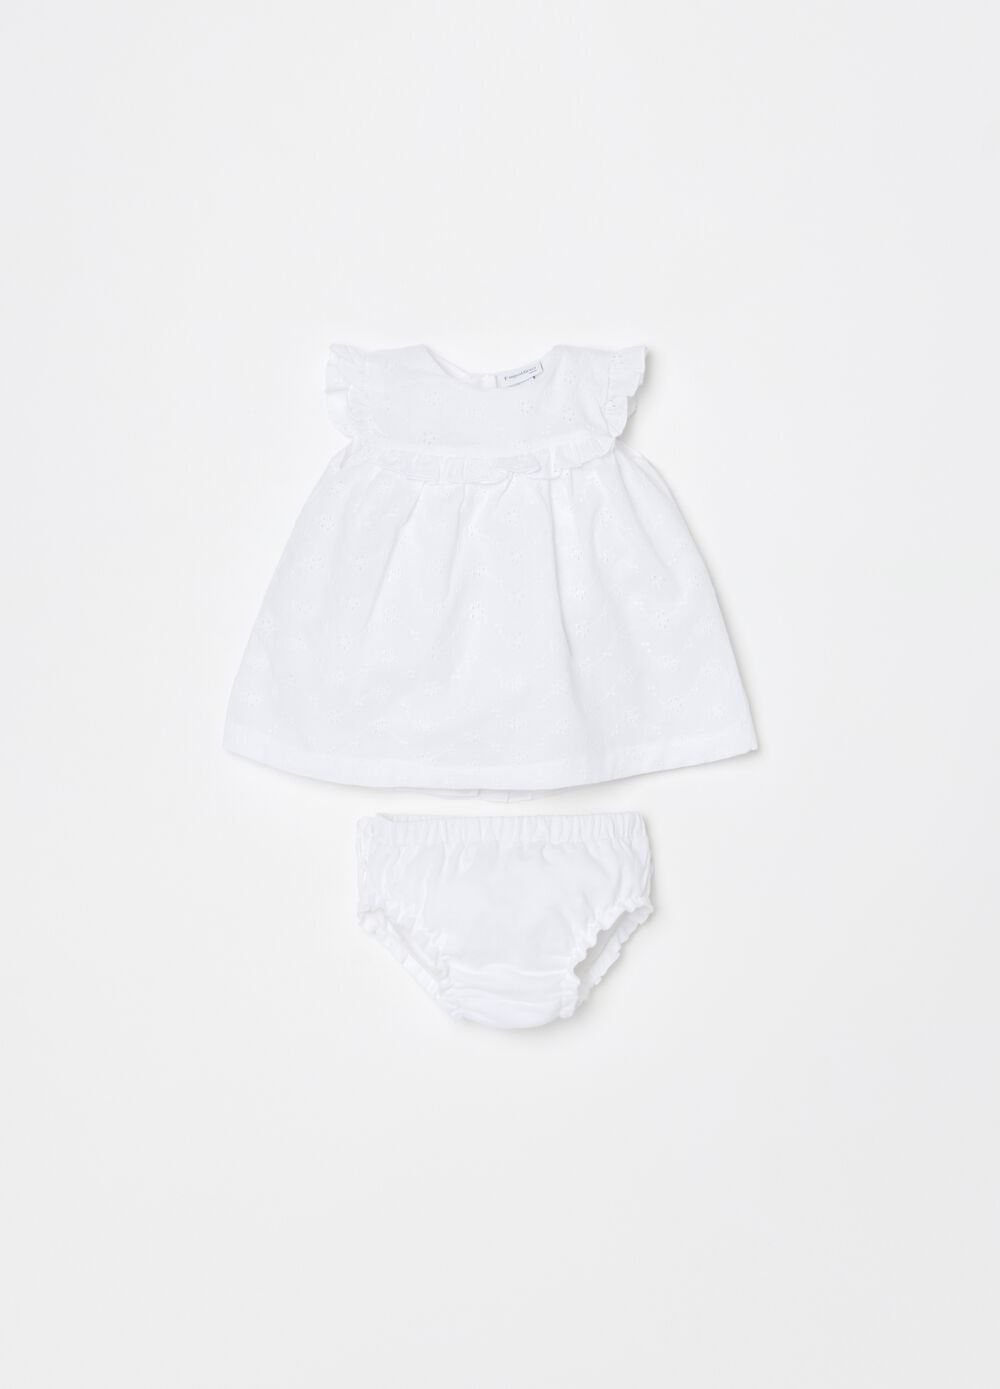 Dress and briefs set in 100% cotton